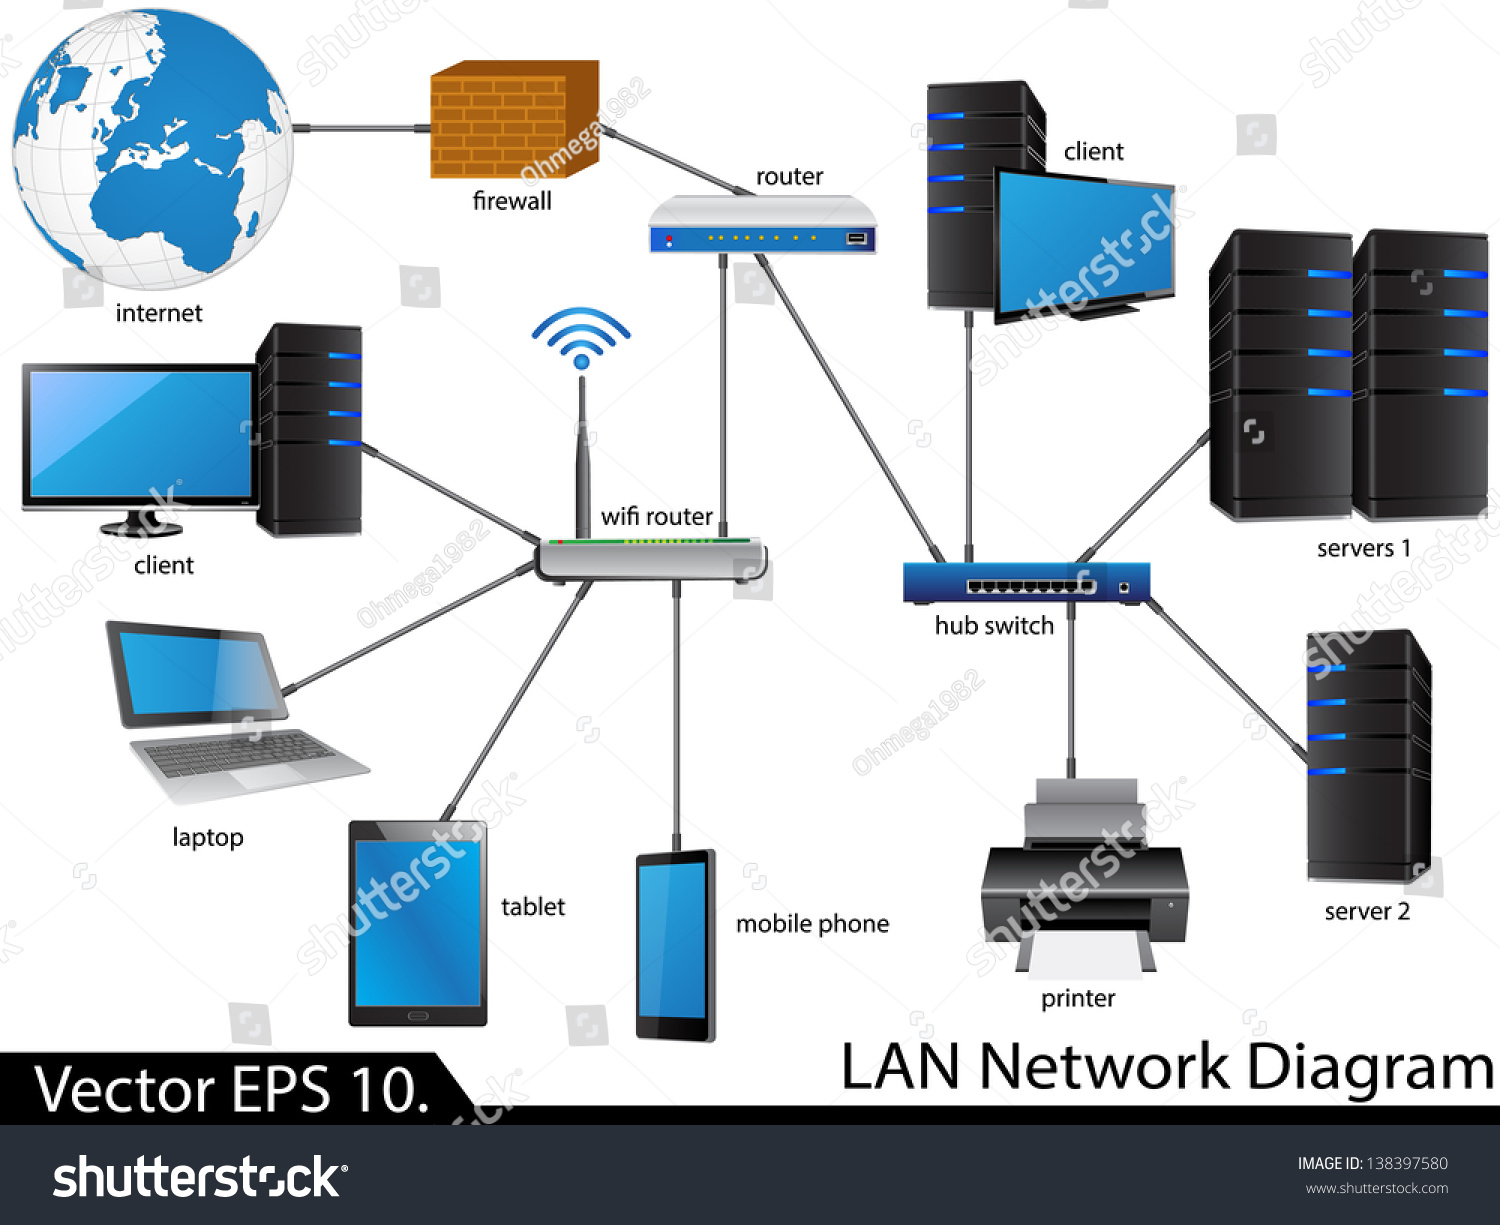 LAN Network Diagram Vector Illustrator , EPS 10. for Business and